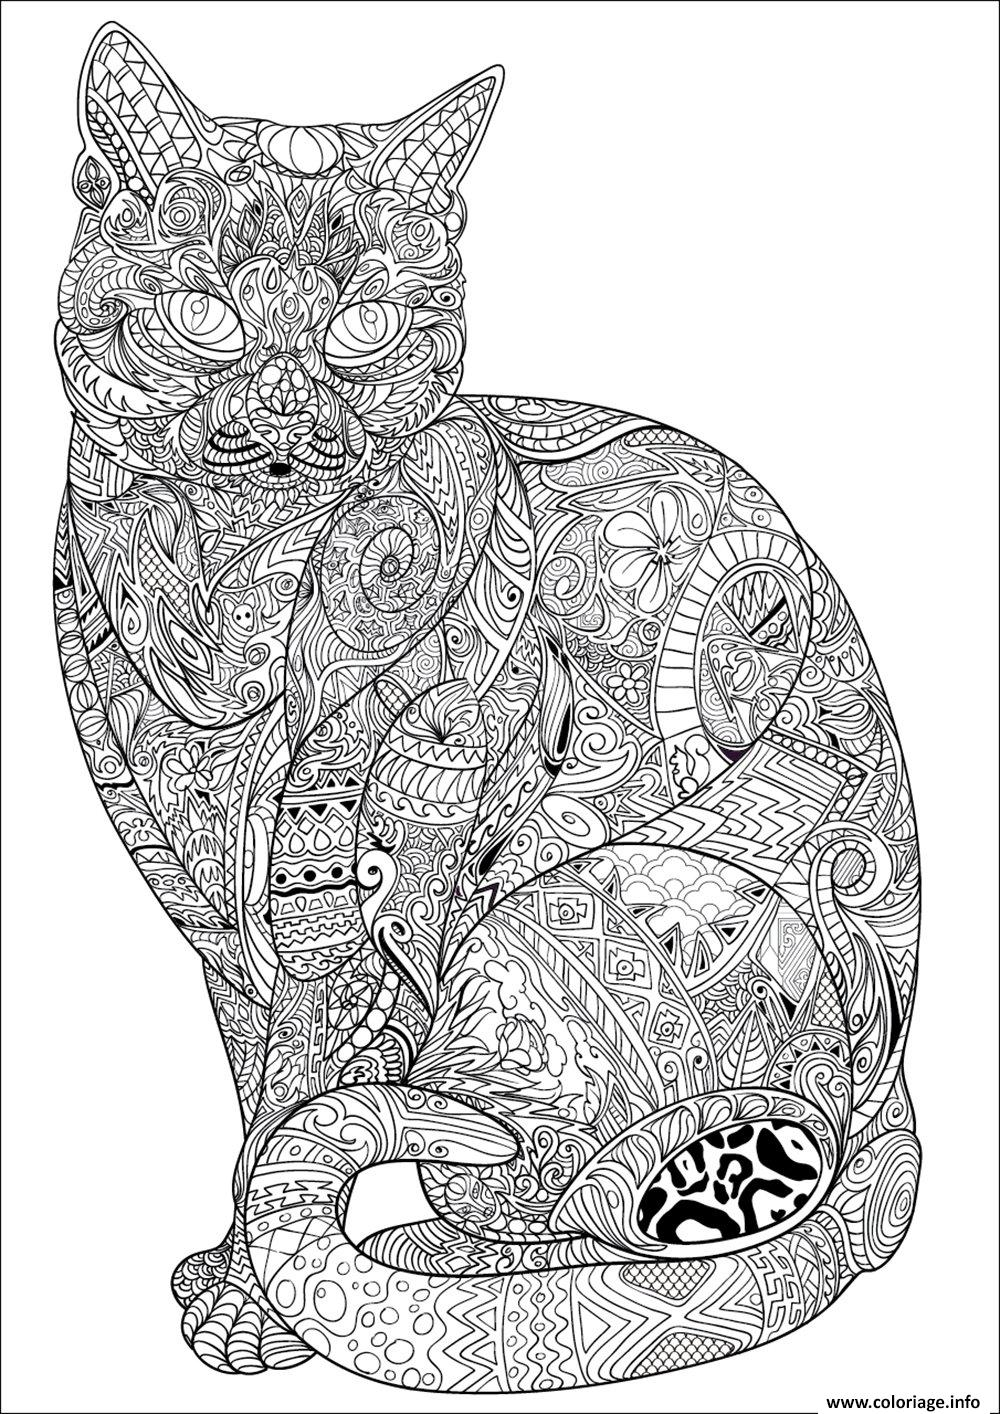 Coloriage chat adulte difficile antistress animaux dessin for Dessiner son jardin en ligne gratuit